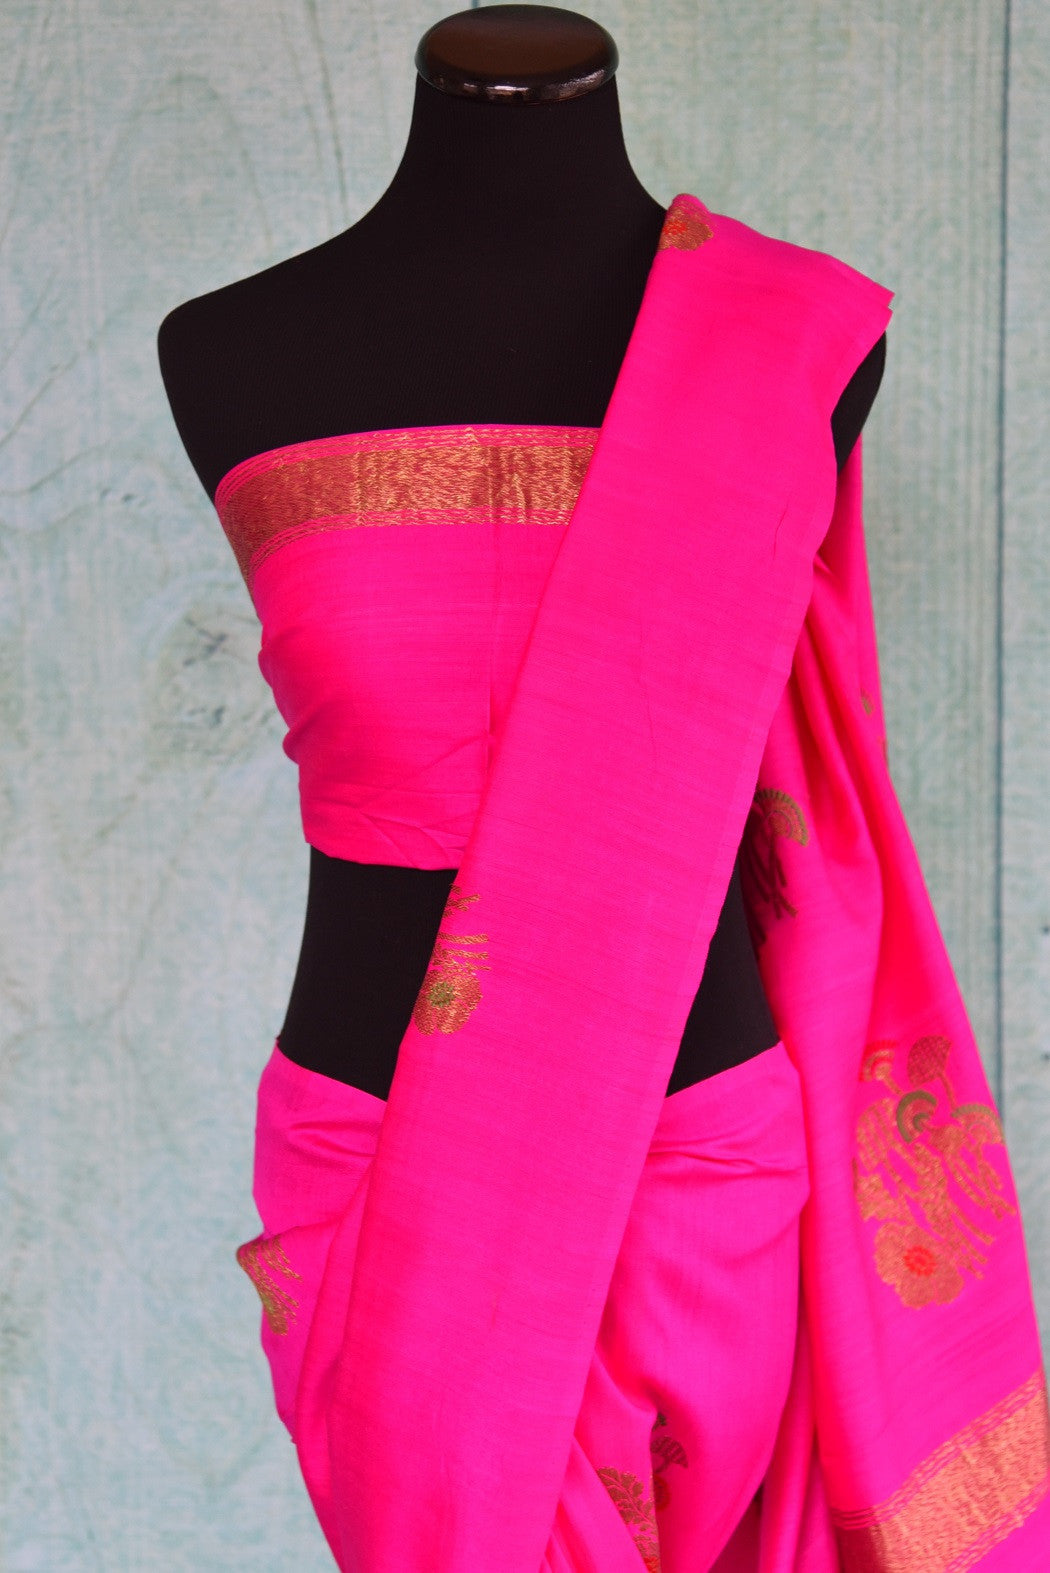 90D440 Rani pink sari with classic golden motifs, available at Pure Elegance, our Indian wear store in USA. The traditional tussar georgette Banarasi saree is ideal for Indian weddings functions.